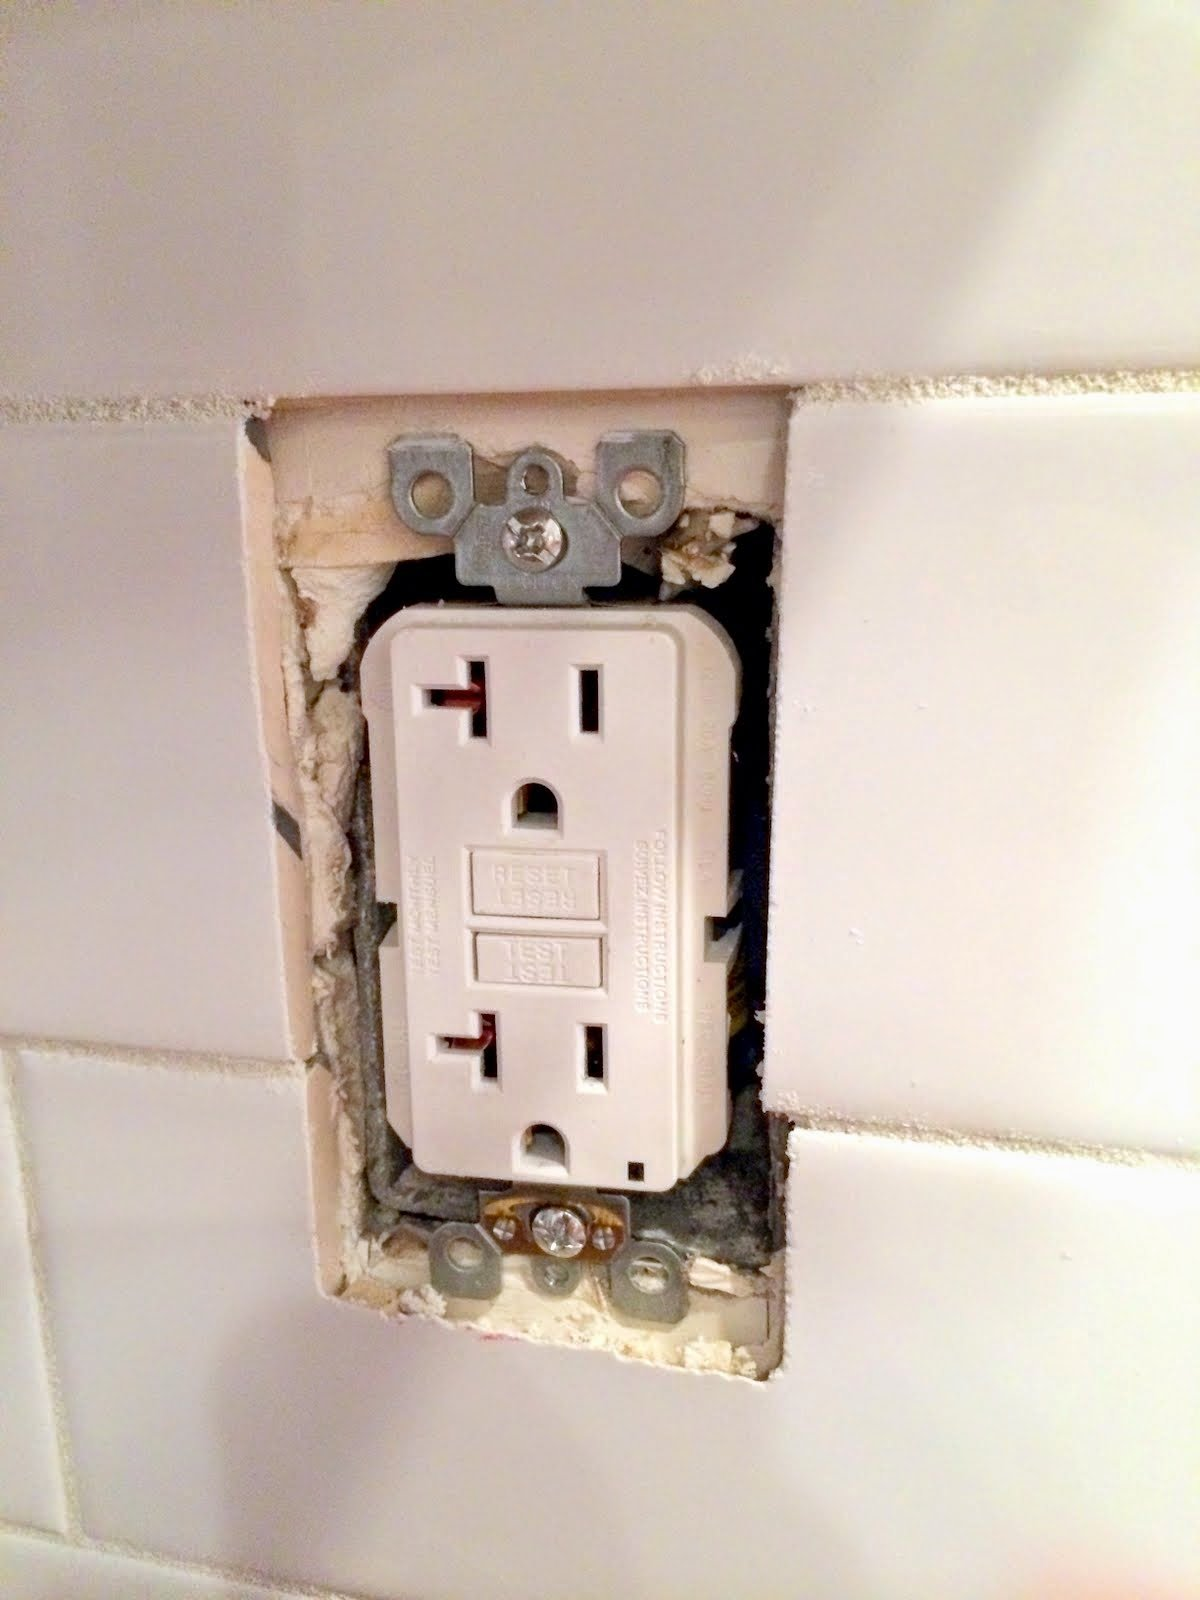 - How To Extend An Outlet After Tiling And • Fix A Loose Outlet